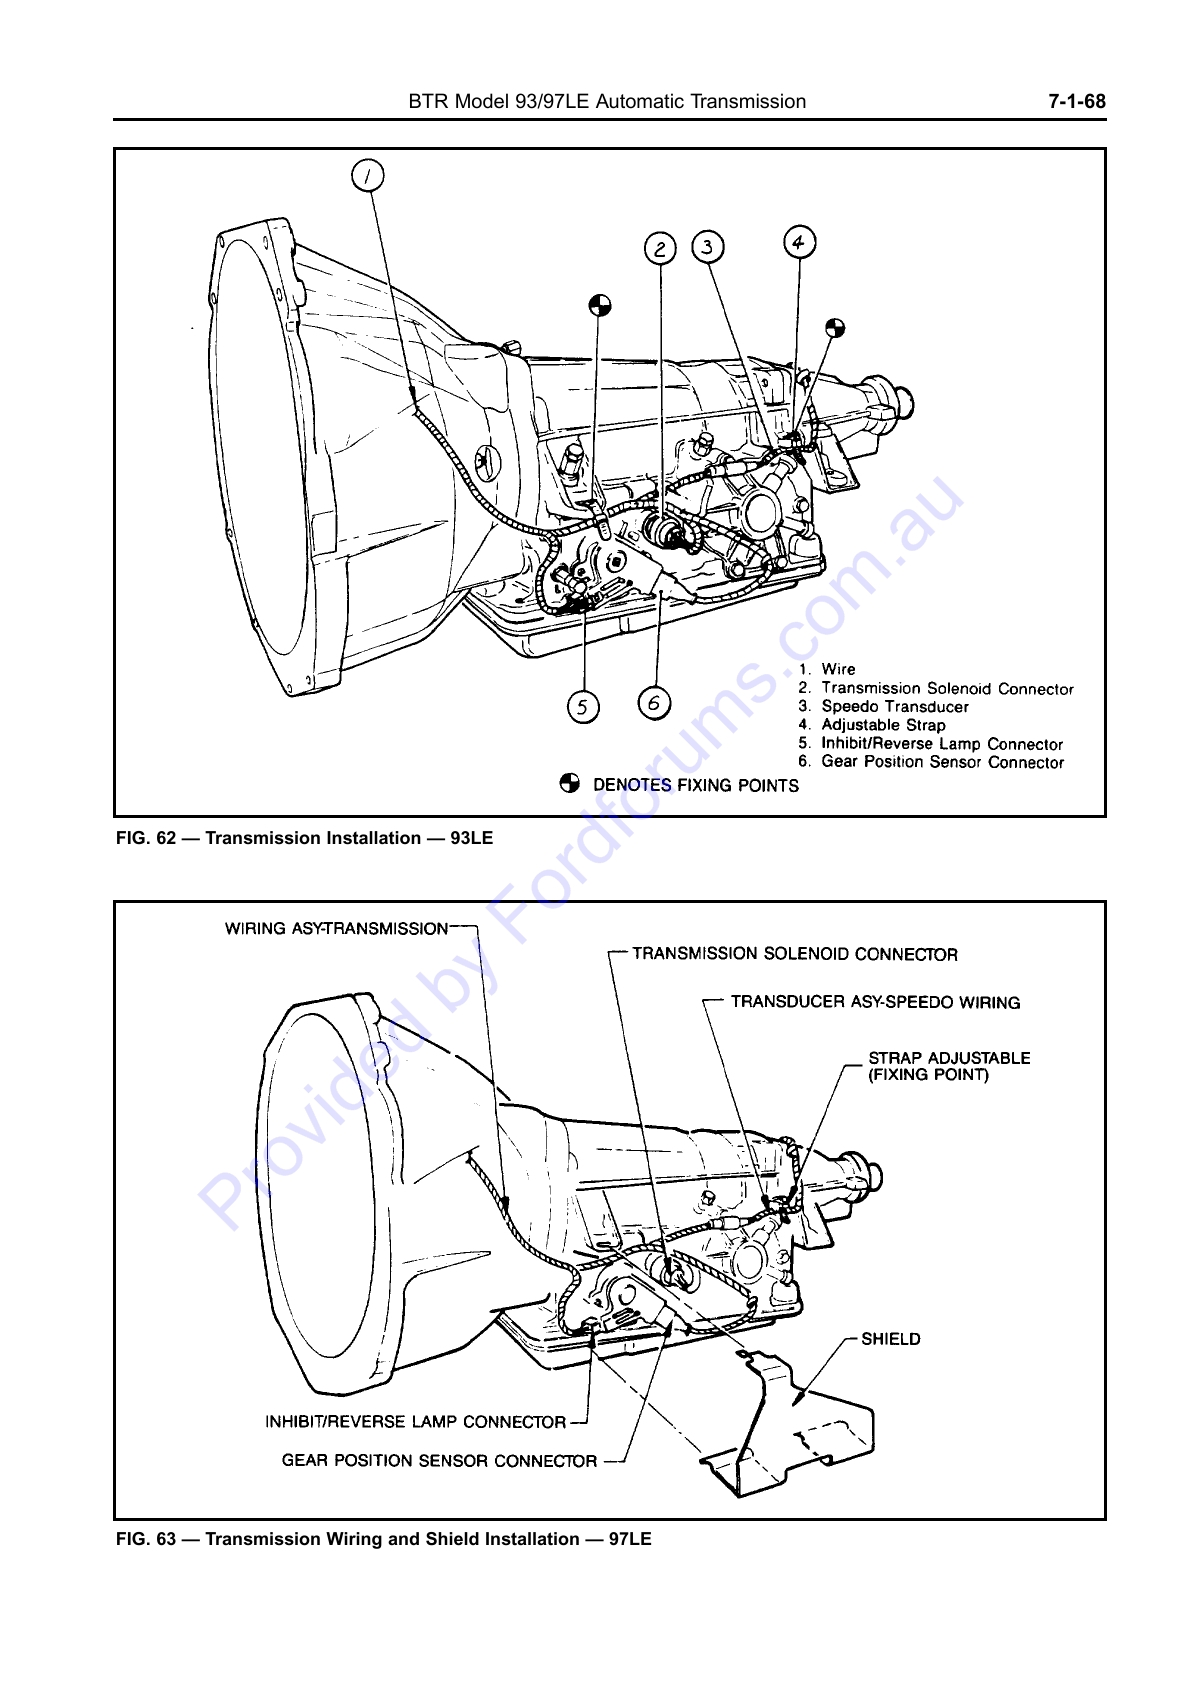 Ford Btr Transmission Manual Cvt Wiring Diagram Au Wsm Page 1 Of 33 Rh Fordforums Com Mustang